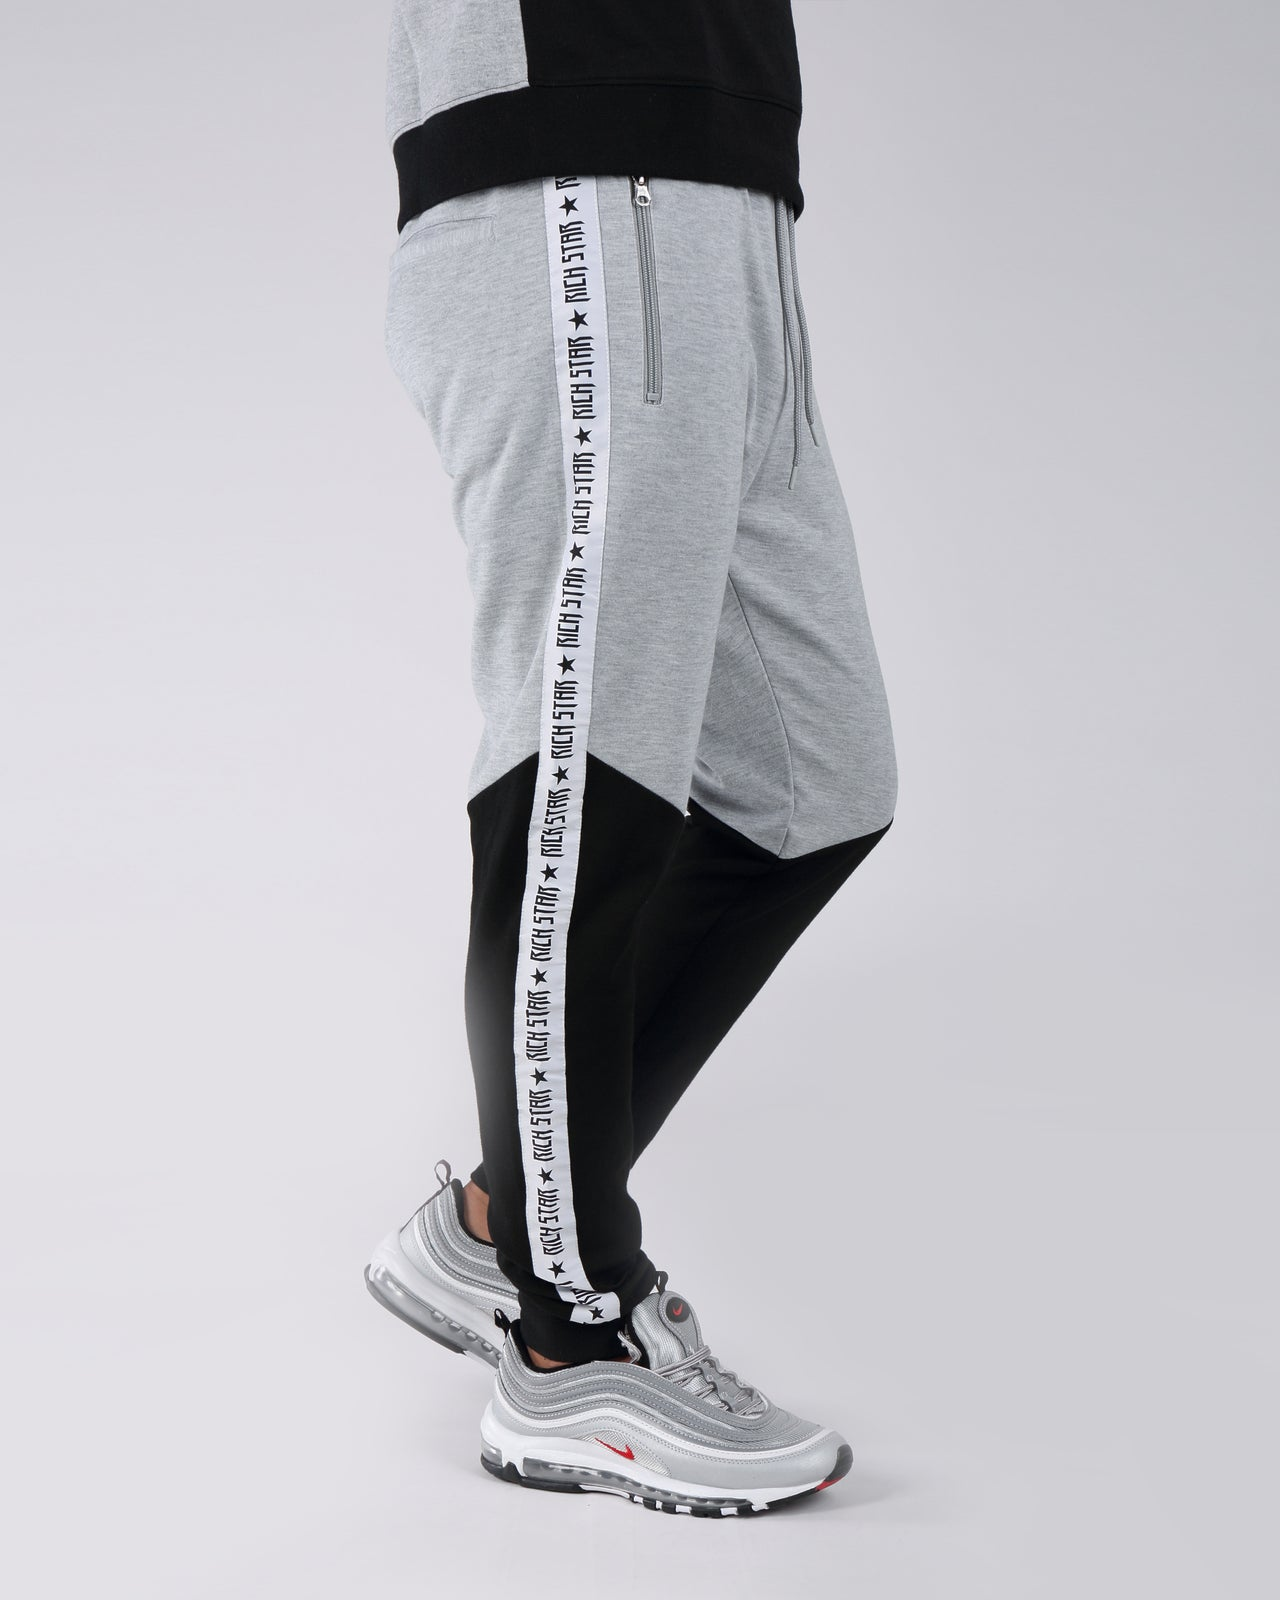 Taping Color Block Jogger Pants - Color: Gray | Gray